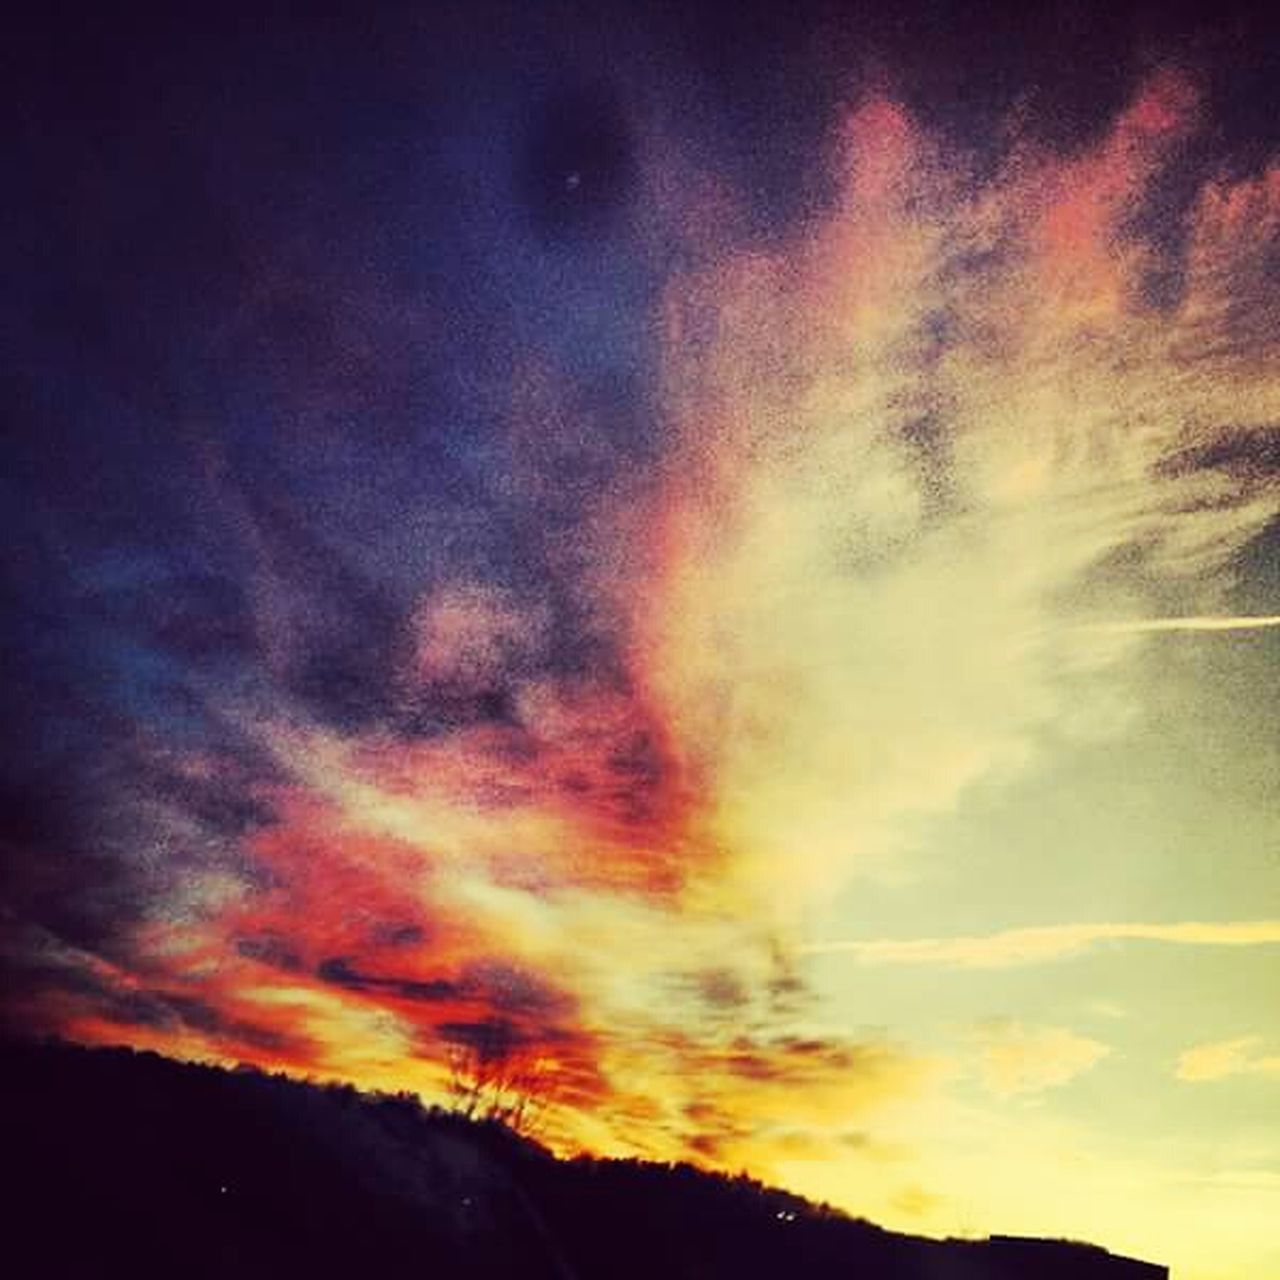 scenics, beauty in nature, nature, dramatic sky, sky, no people, tranquility, tranquil scene, multi colored, outdoors, sunset, cloud - sky, awe, mountain, day